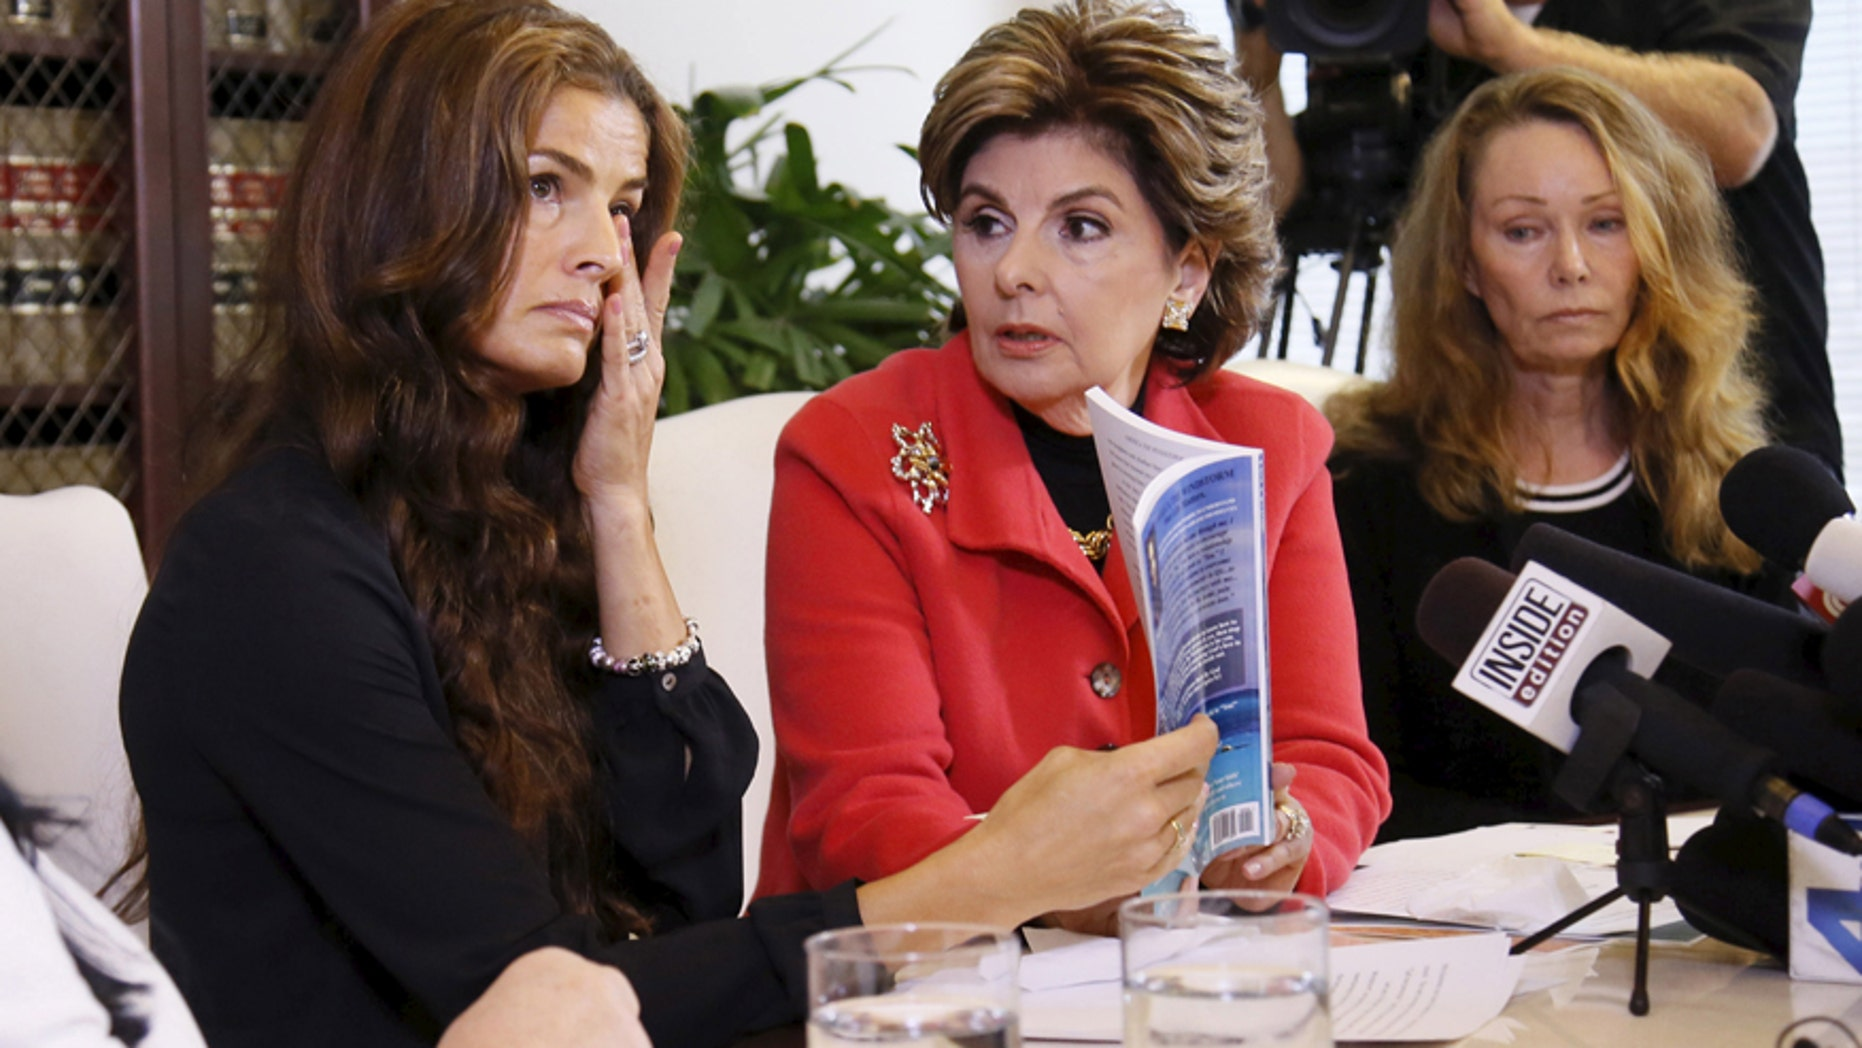 Former Mrs. America Lisa Christie (L), who alleges misconduct by Bill Cosby along with two others in the room, Sharon Van Ert (R) and Pamela Abeyta (not pictured), cries as she reads a paragraph from her book during a news conference with attorney Gloria Allred (C) at Allred's law office in Los Angeles, September 30, 2015.